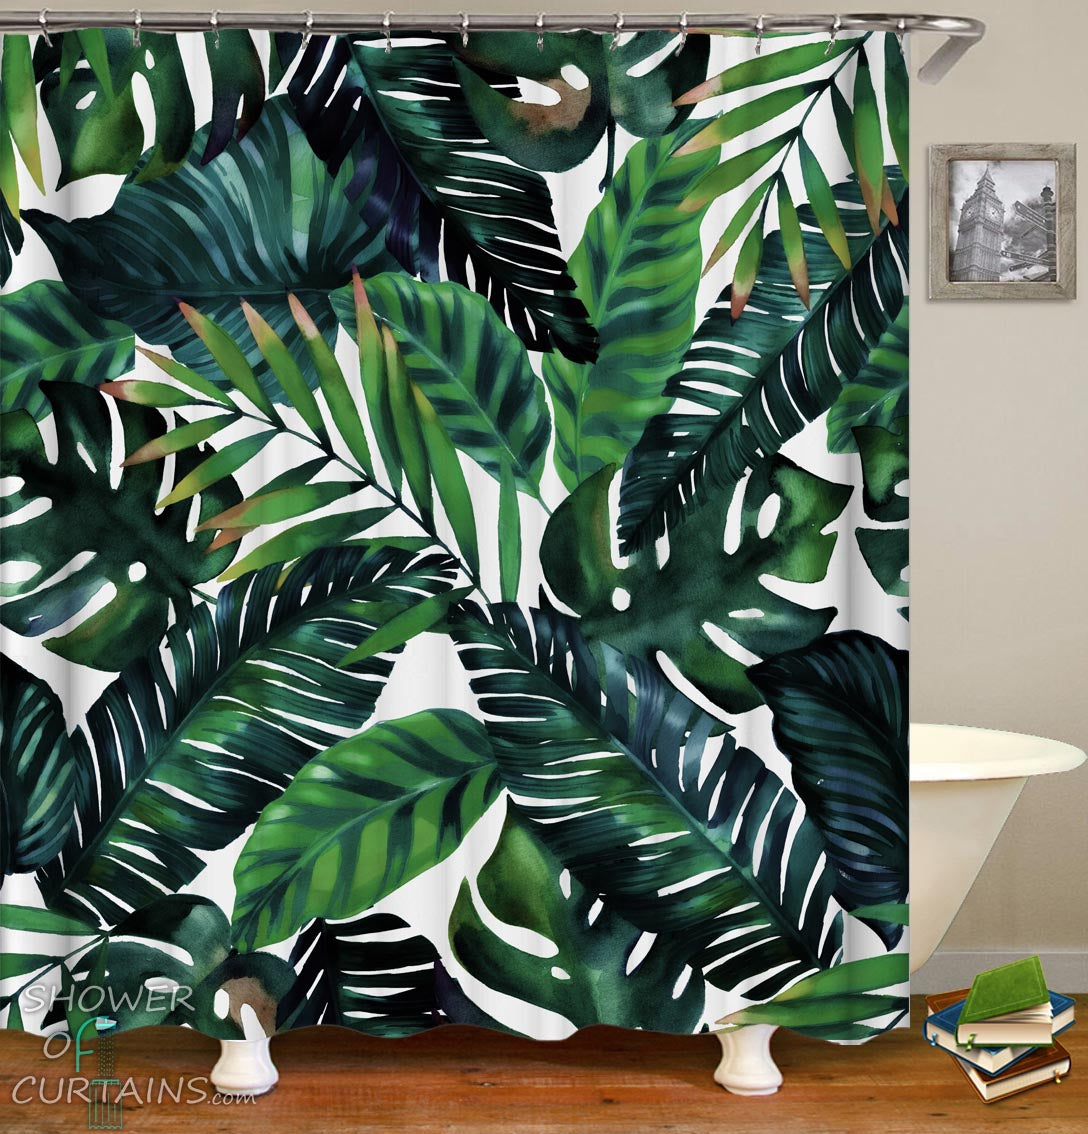 Shower Curtains With Dark Green Palm Leaves Shower Of Curtains Tropical leaf print shower curtain. dark green palm leaves shower curtain